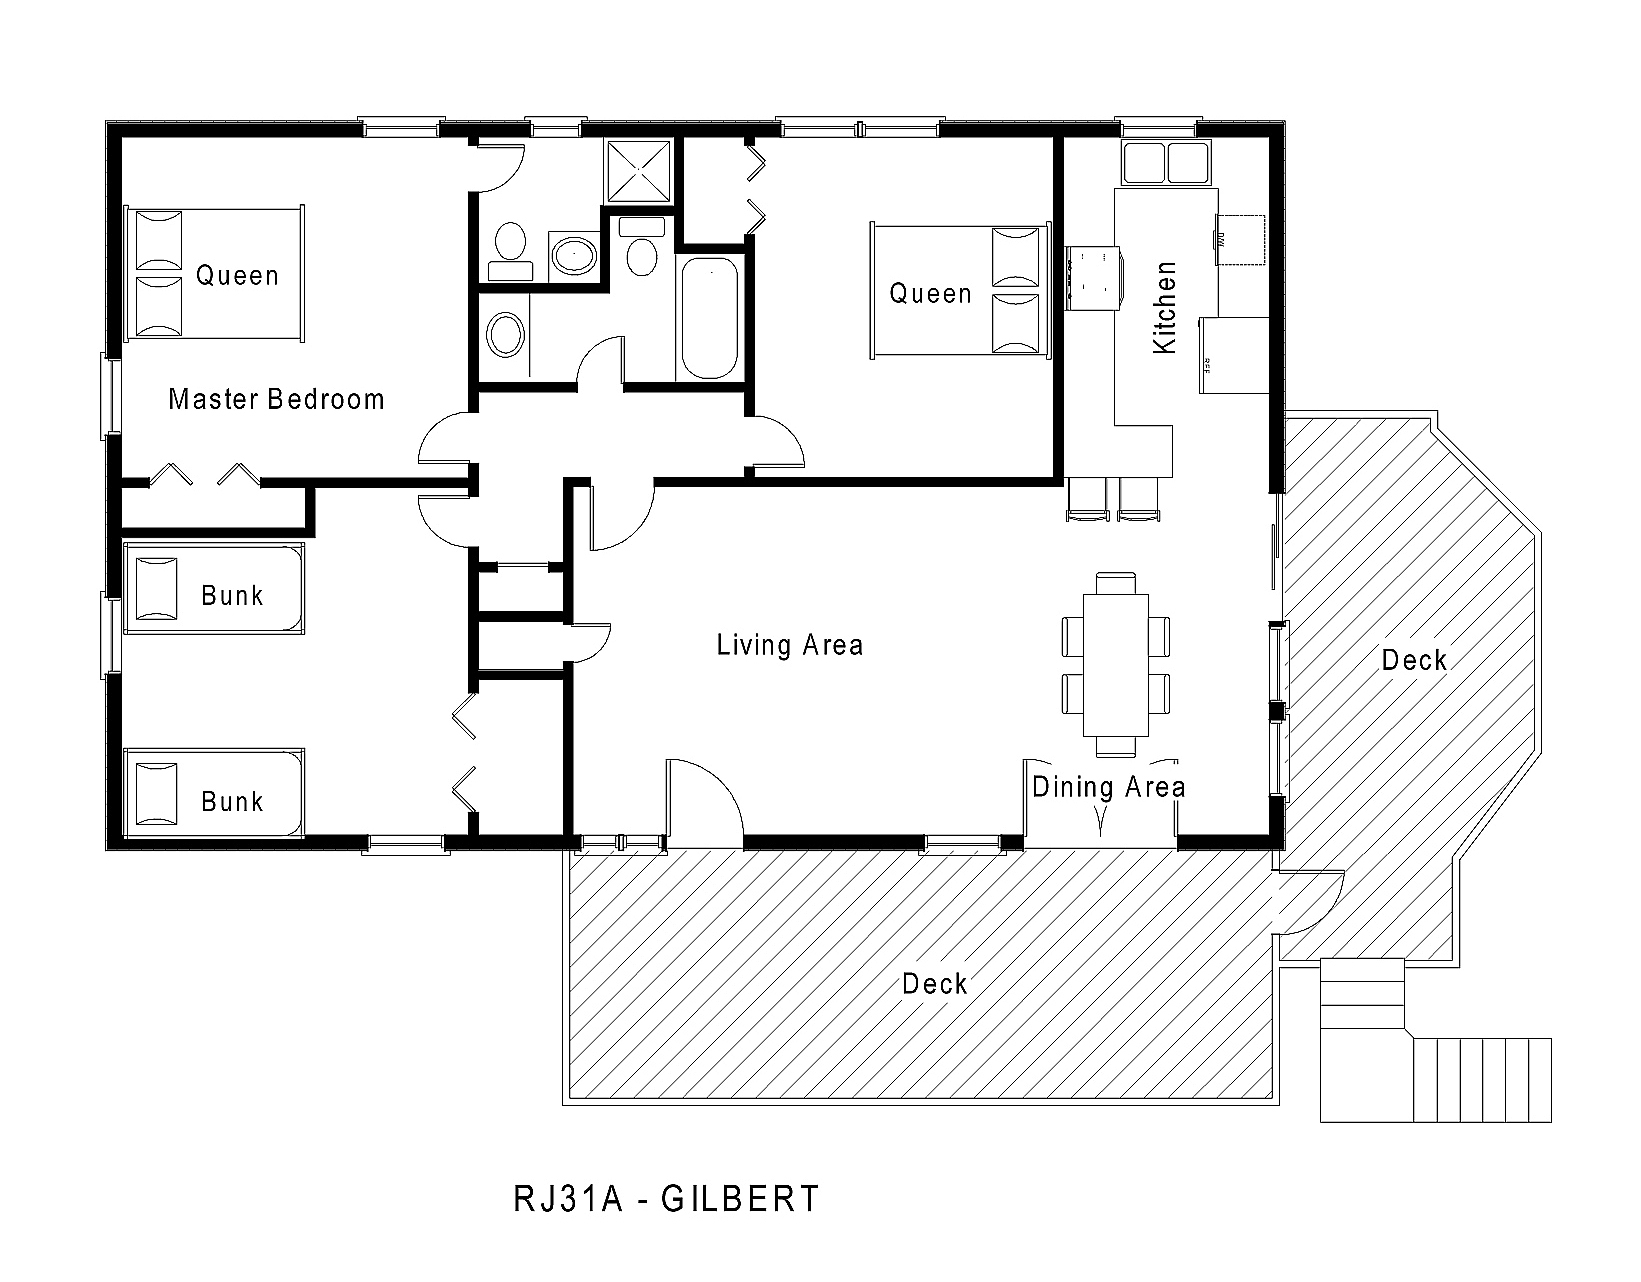 4 bedroom house plans one story bedroom decor plan 034h for Open floor plan house plans one story